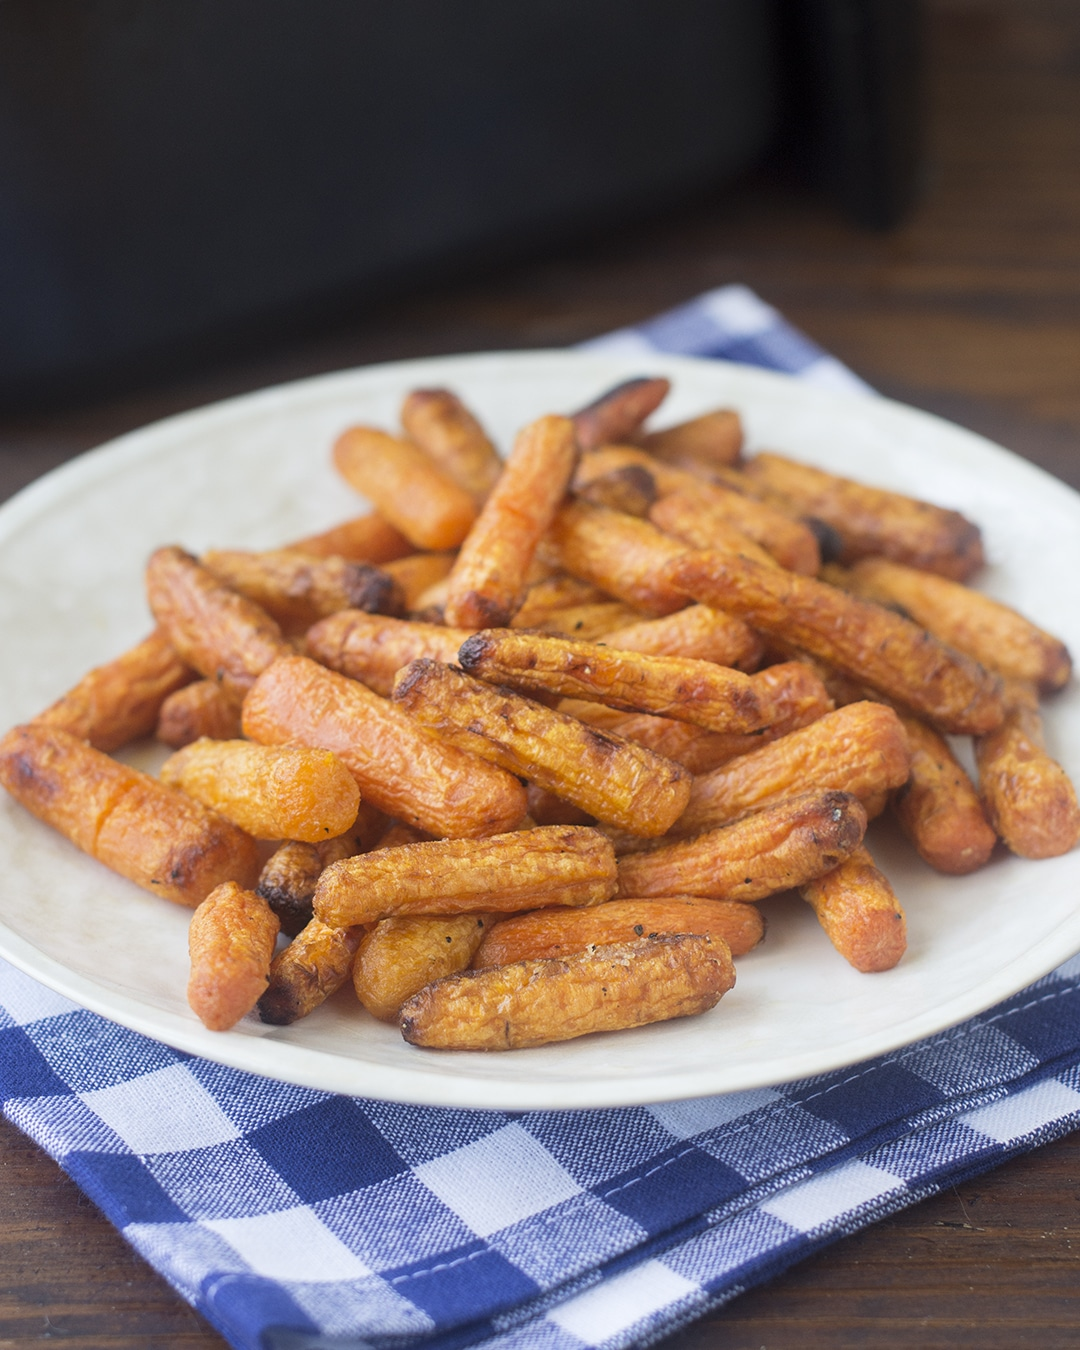 The air fryer is a wonderful tool for roasting vegetables quickly. One of my favorites to cook in there is carrots. They come out soft right through, and lightly caramelized on the outside, in just 10 minutes. Isn't that crazy? #airfryerrecipes #vegetablerecipes #carrotrecipes